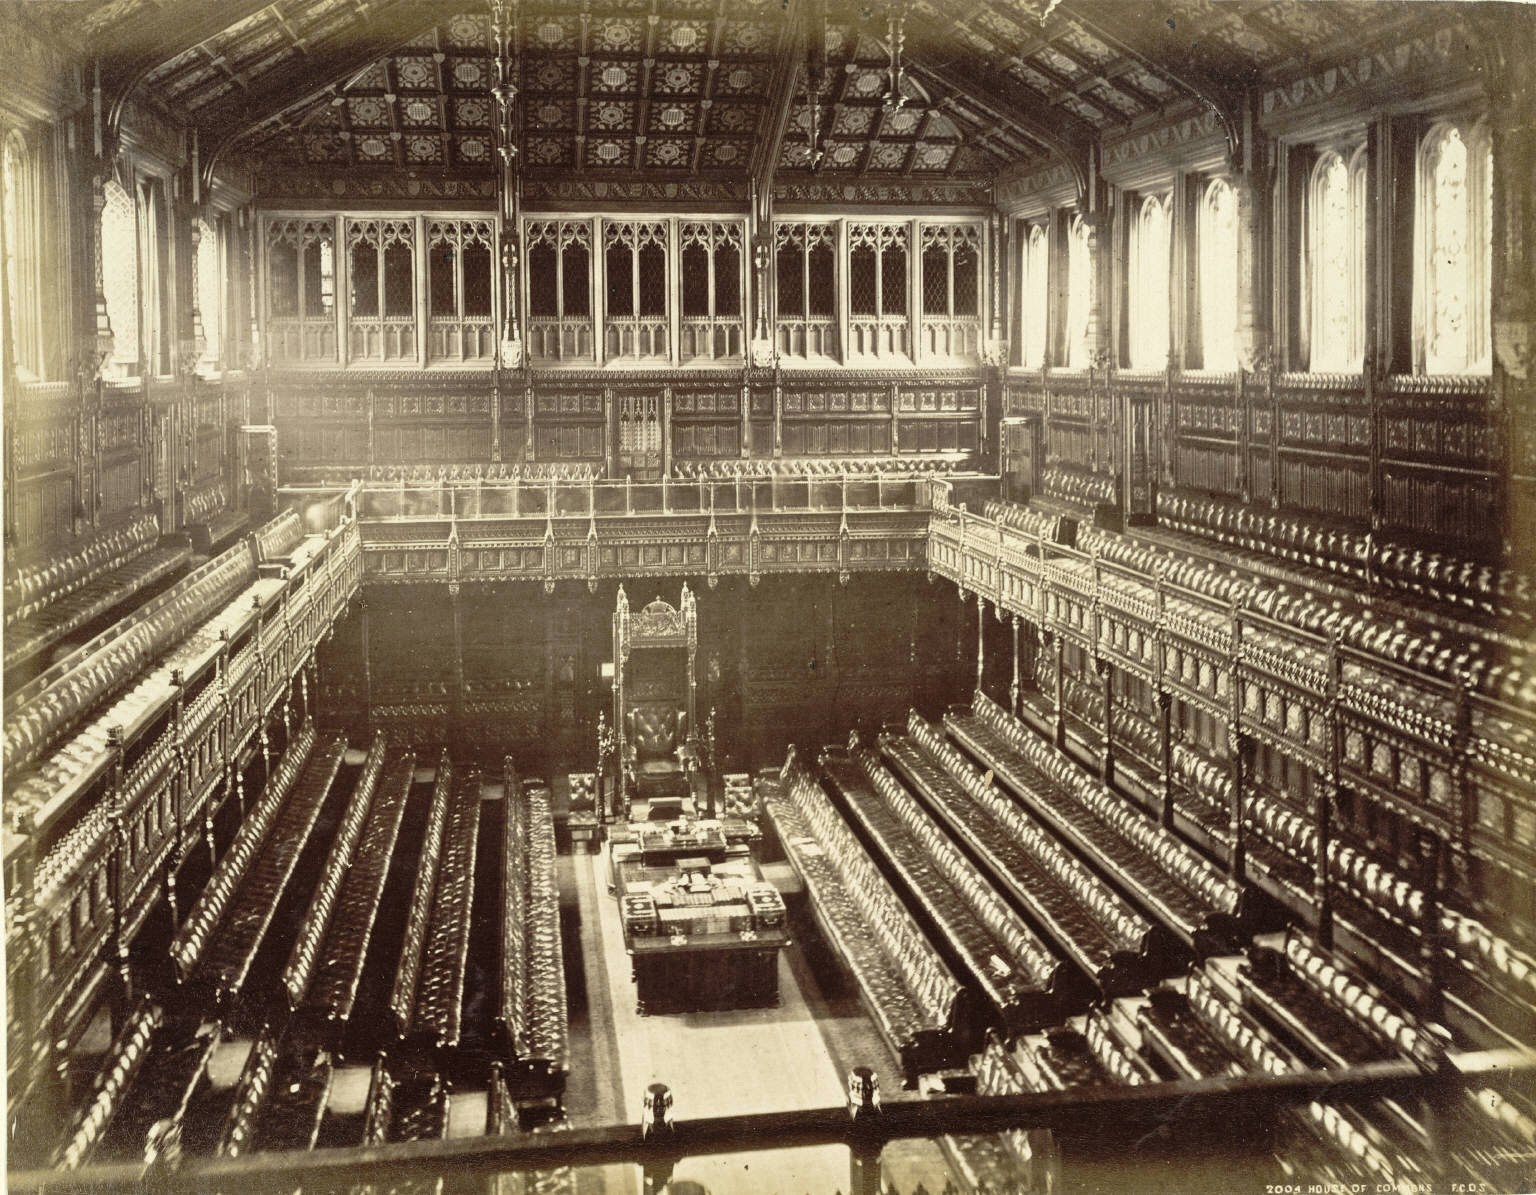 Old House of Commons - was destroyed by German bombs in 1941 (from Wikipedia)